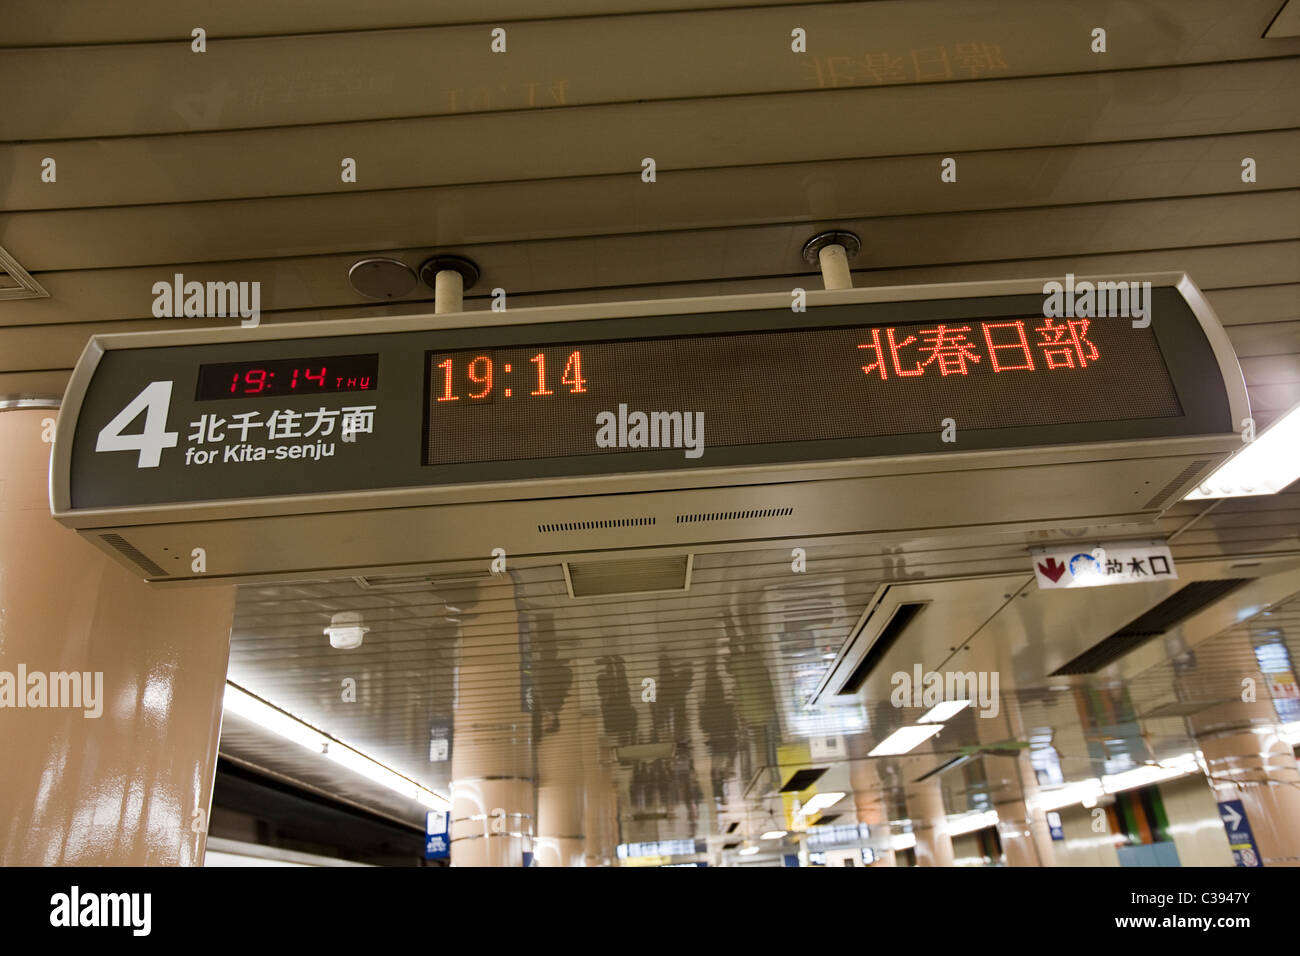 TRAIN SIGN AT RAILWAY STATION IN JAPAN - Stock Image